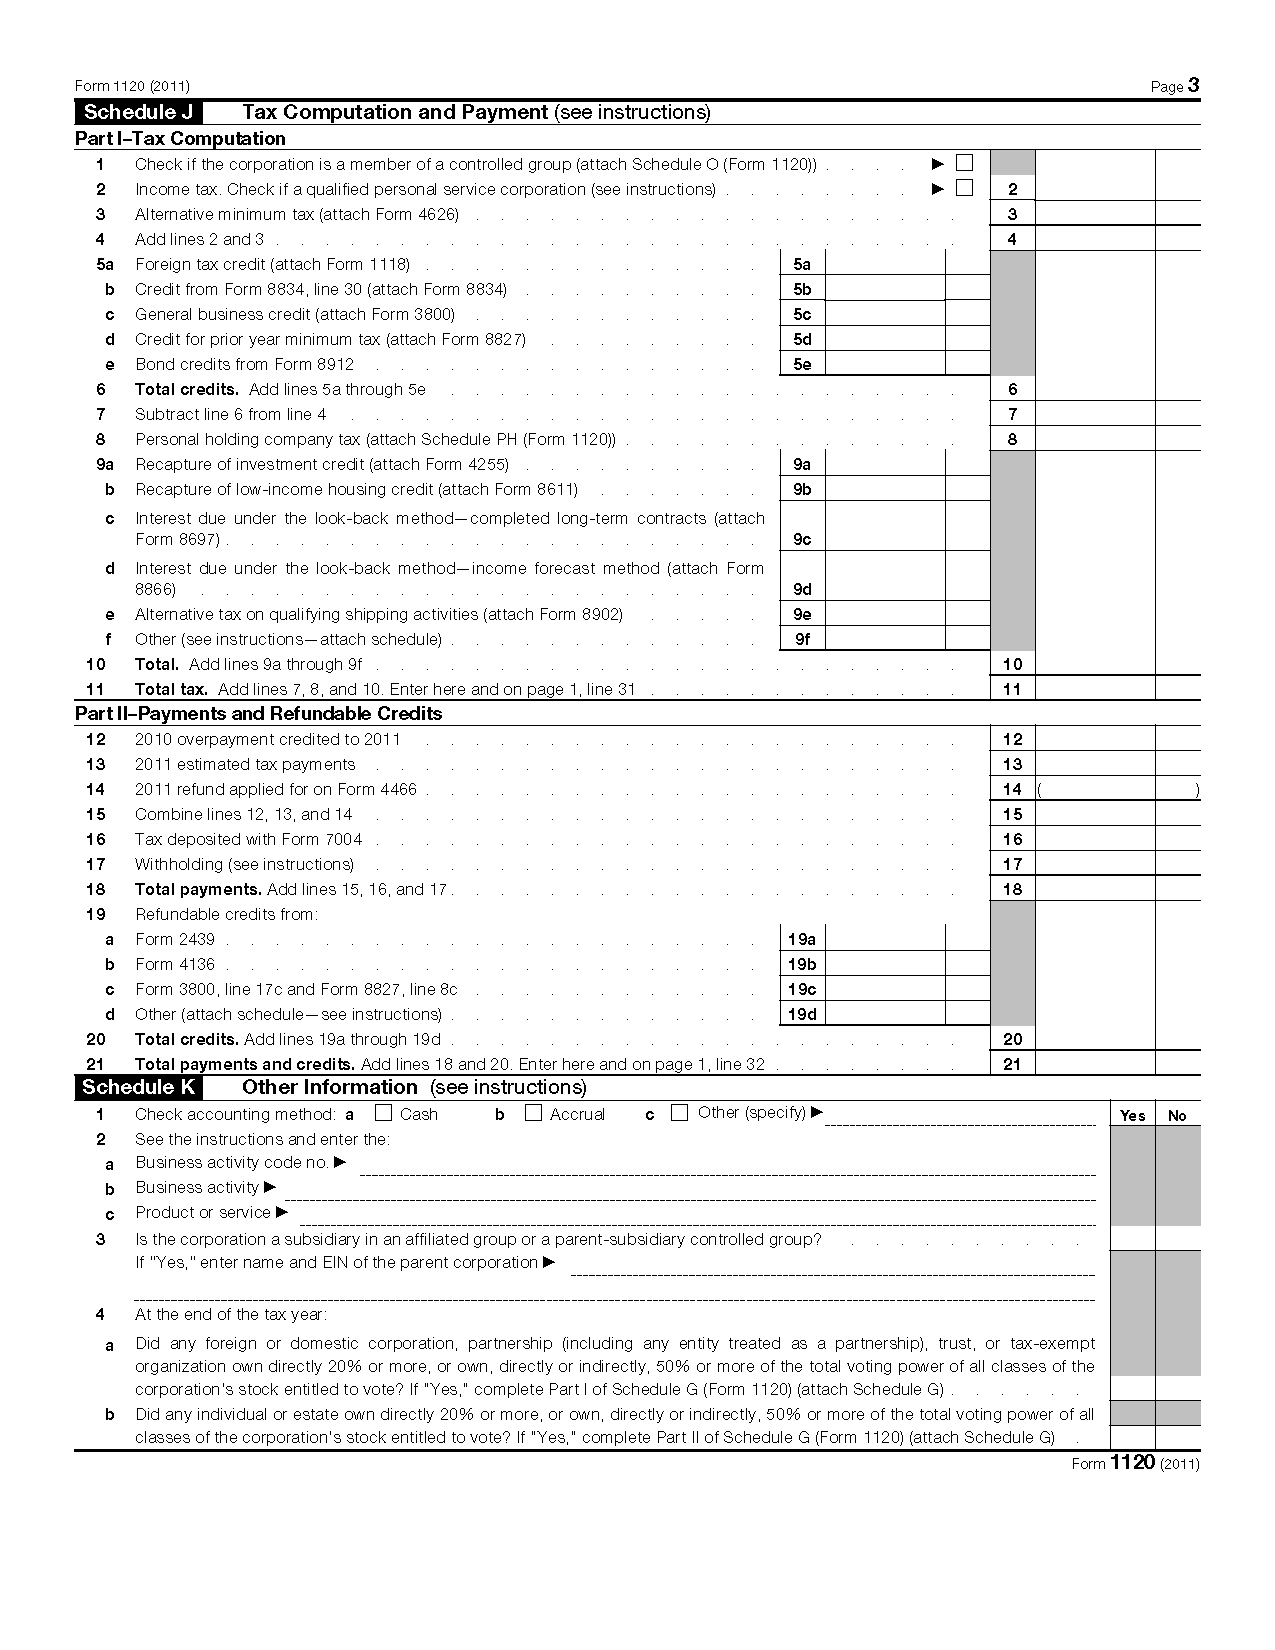 foreign tax credit instructions